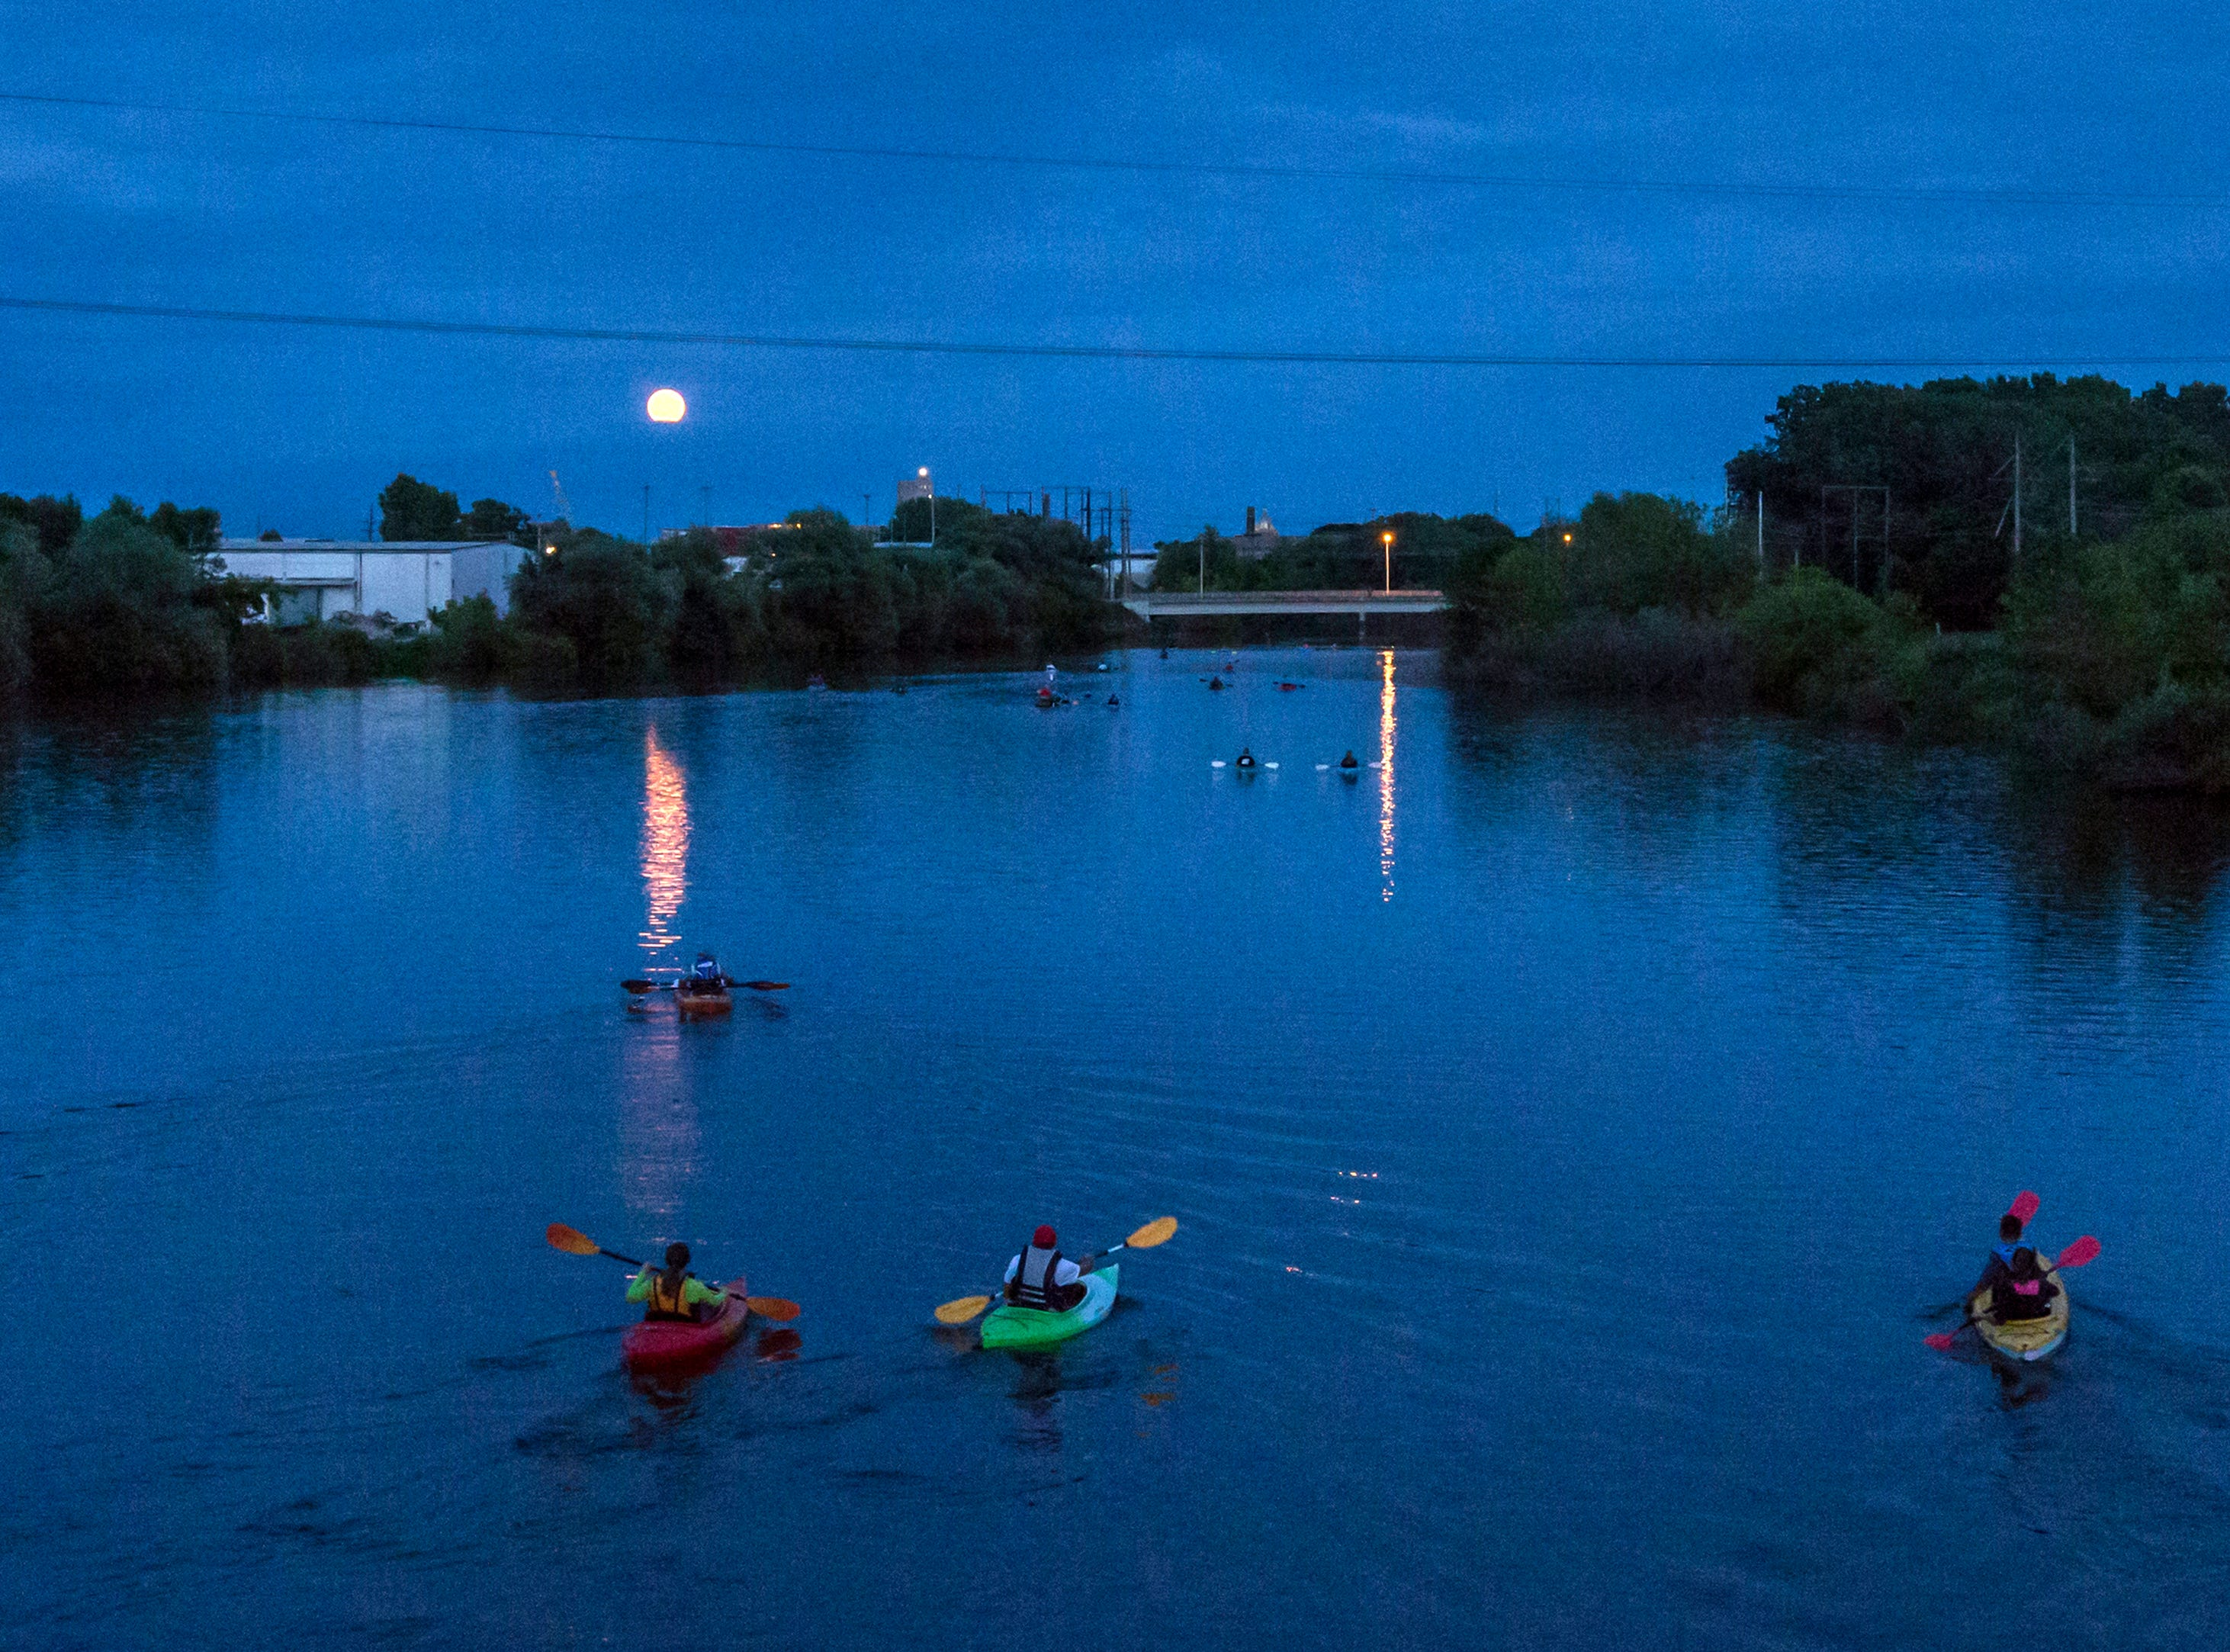 Paddlers make their way down the Manitowoc River as a full moon rises over the horizon Friday, July 27, 2018, in Manitowoc, Wis. Josh Clark/USA TODAY NETWORK-Wisconsin